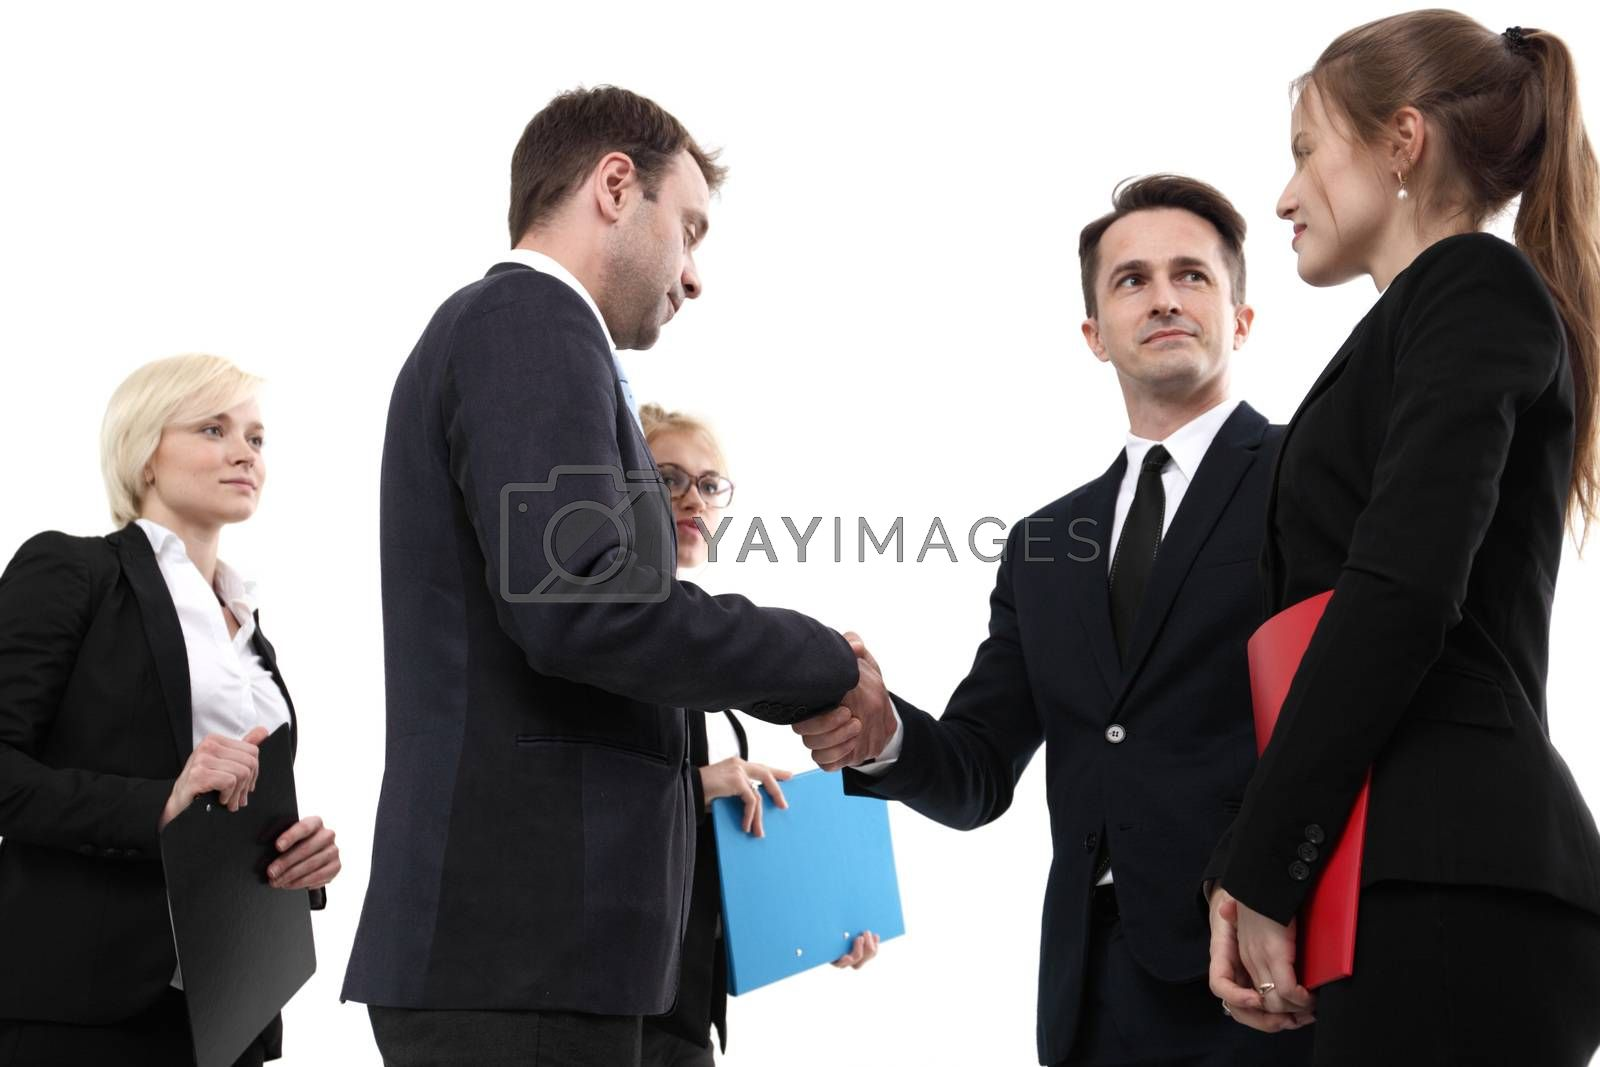 Business people shaking hands finishing up a meeting, isolated on white